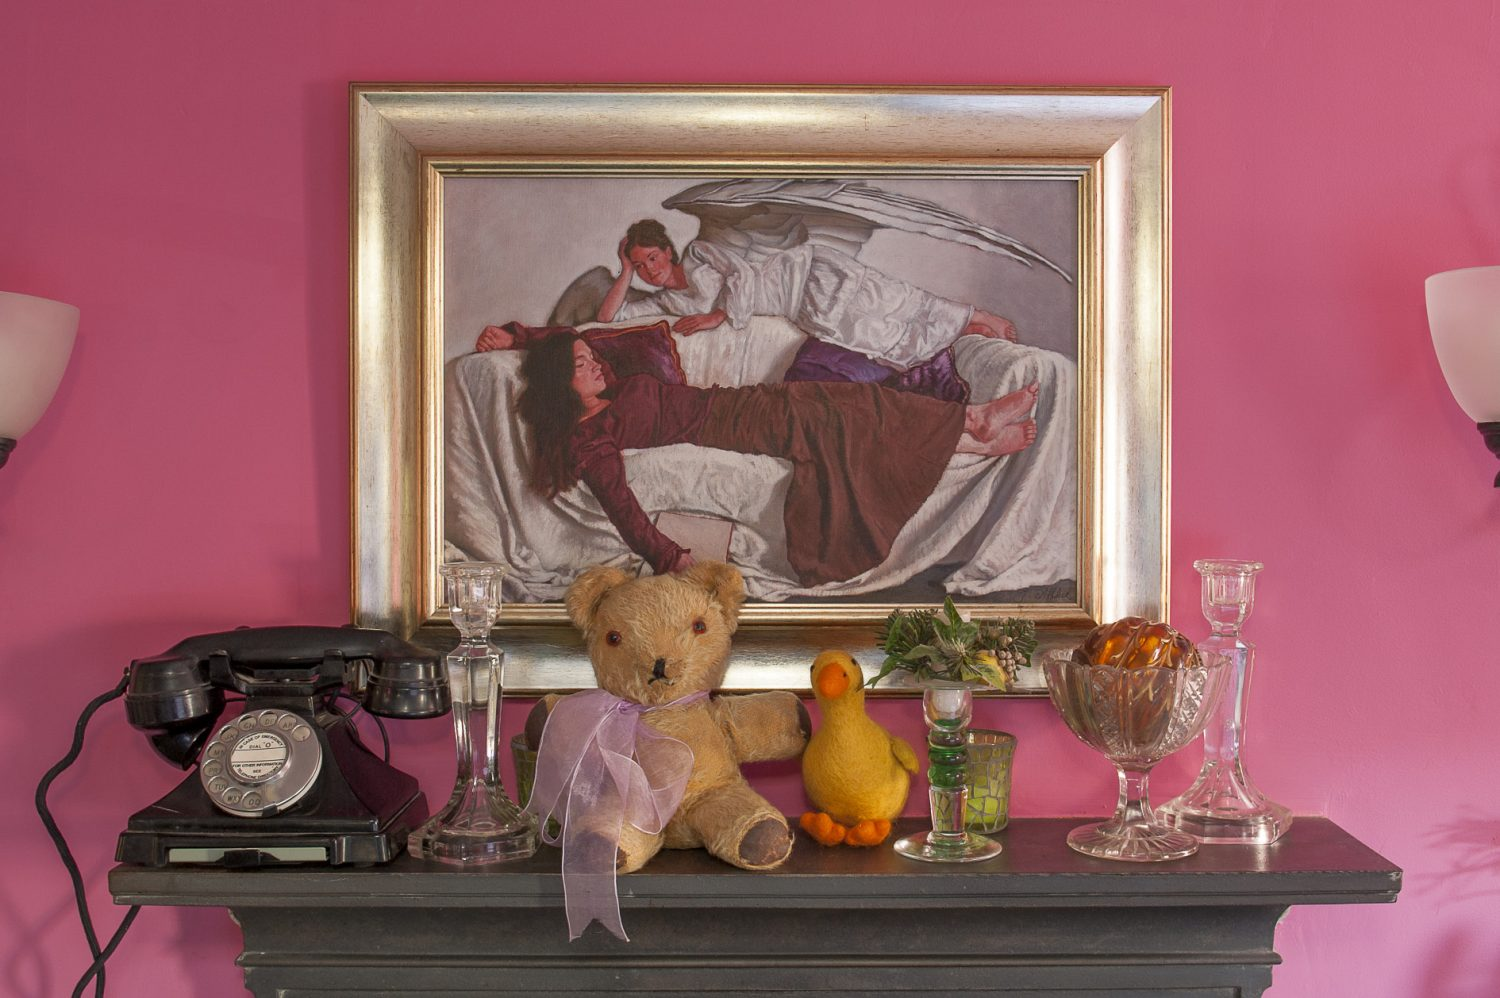 The teddy on the bedroom mantlepiece was given to Eve when she was three days old. The painting is 'An Angel Watches Over Me' by John Afflick